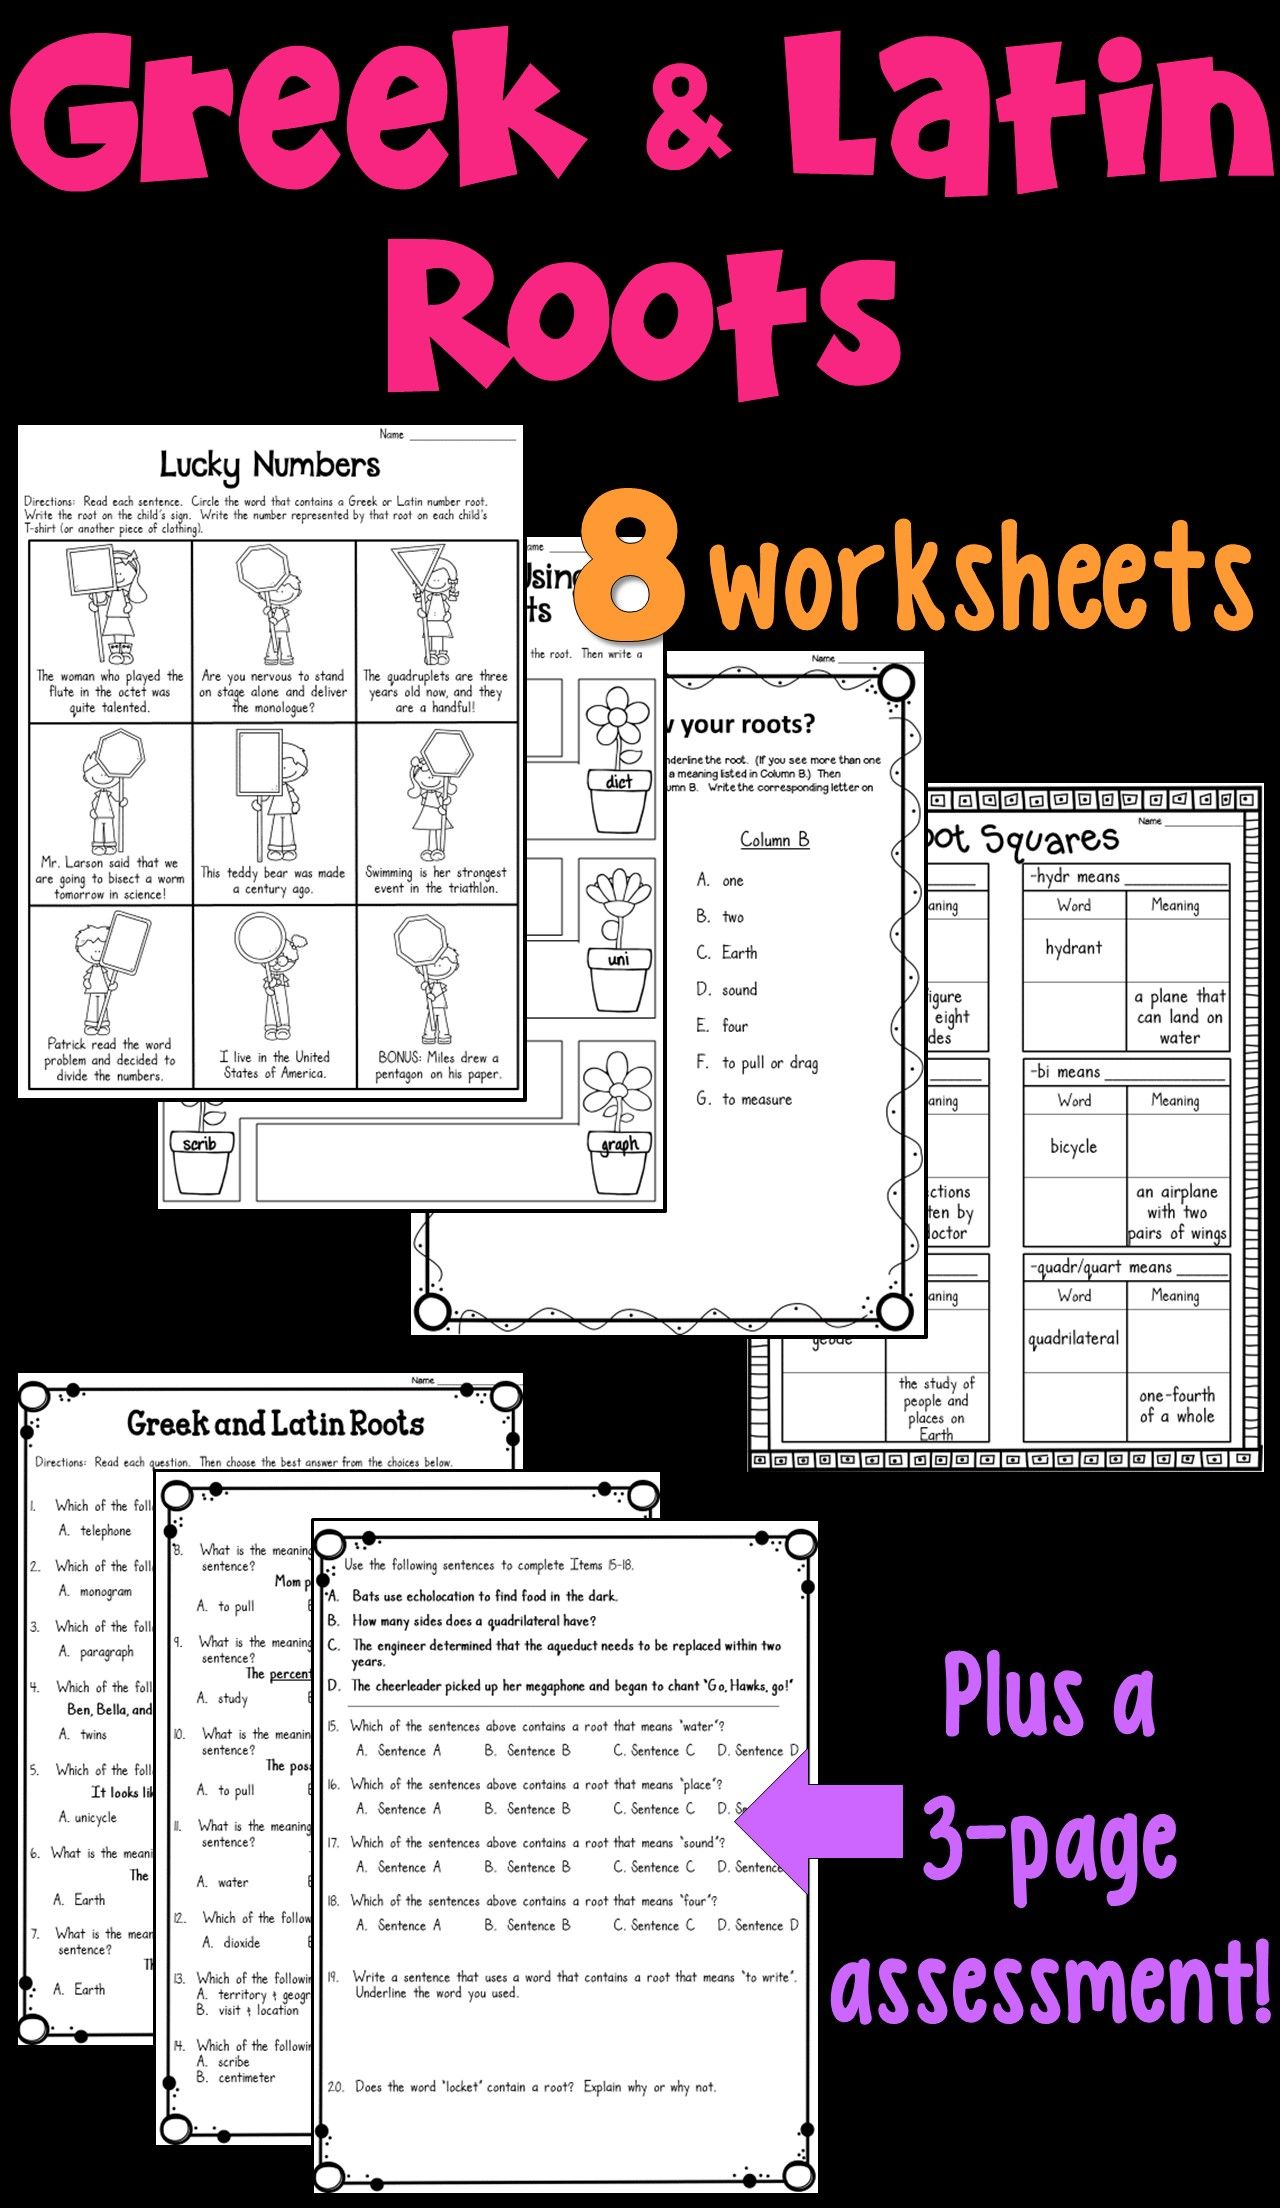 Worksheets Latin Roots Worksheet greek and latin roots worksheets assessment language arts worksheet packet this includes 8 a 3 page assessment